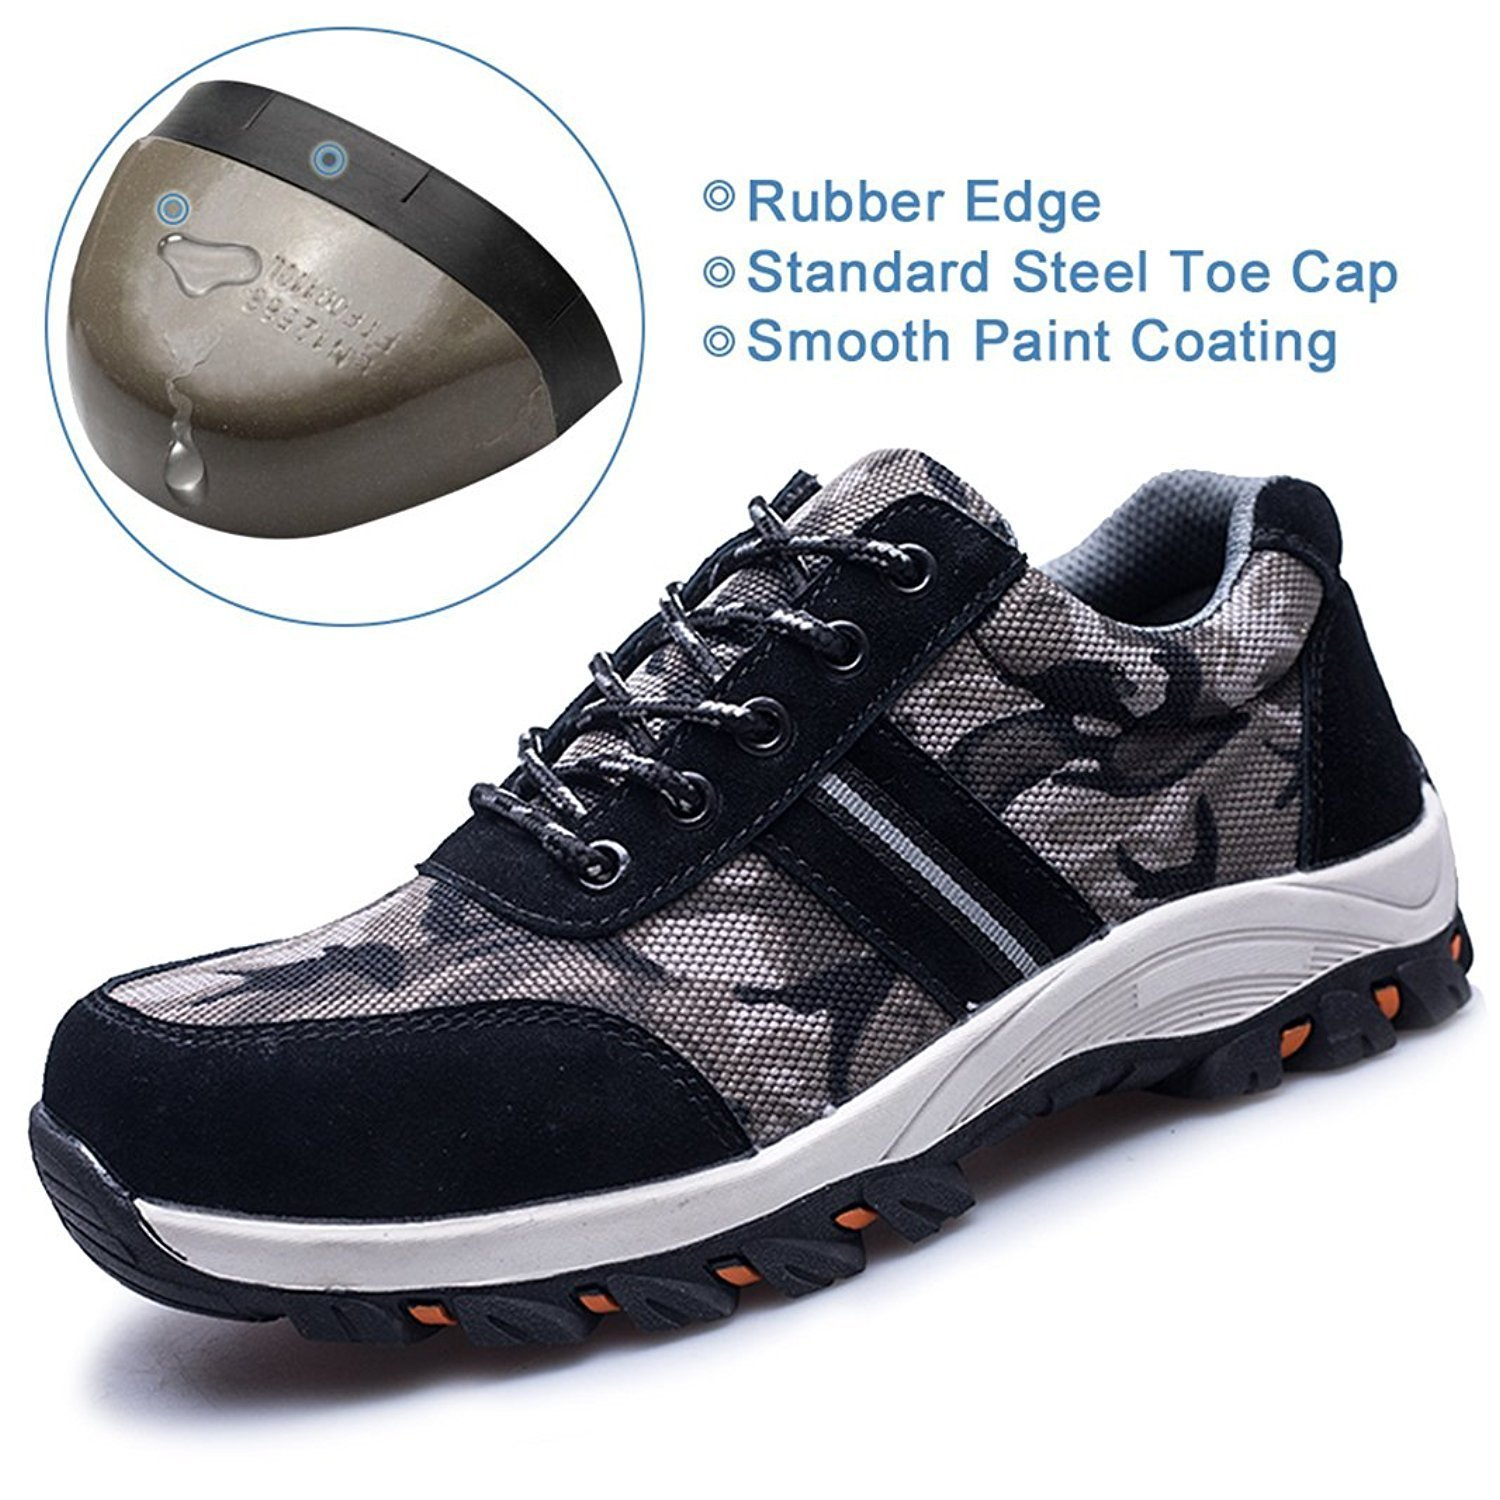 TQGOLD Work Safety Shoes Steel Toe Shoes Composite Protect Toe for Men Women Industrial&Construction(Size 42, Gray) by TQGOLD (Image #2)